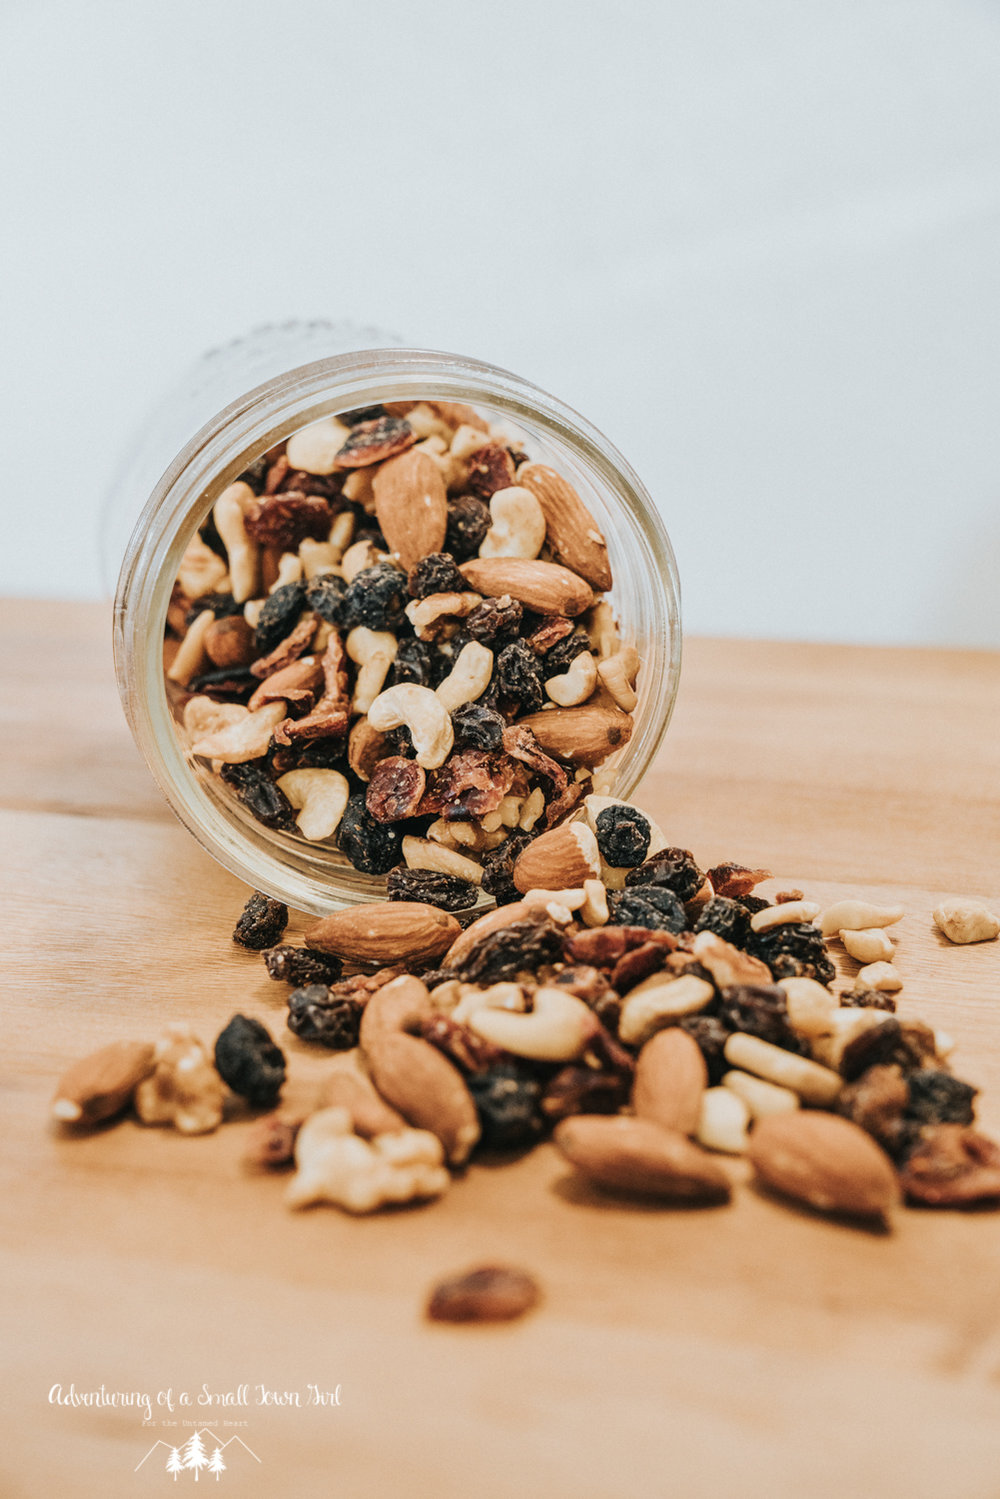 Homemade Trail Mix Recipe by Adventuring of a Small Town Girl (ASTG) - No Bake Raw Vegan Trail Mix - Make your own trail mix-4.jpg